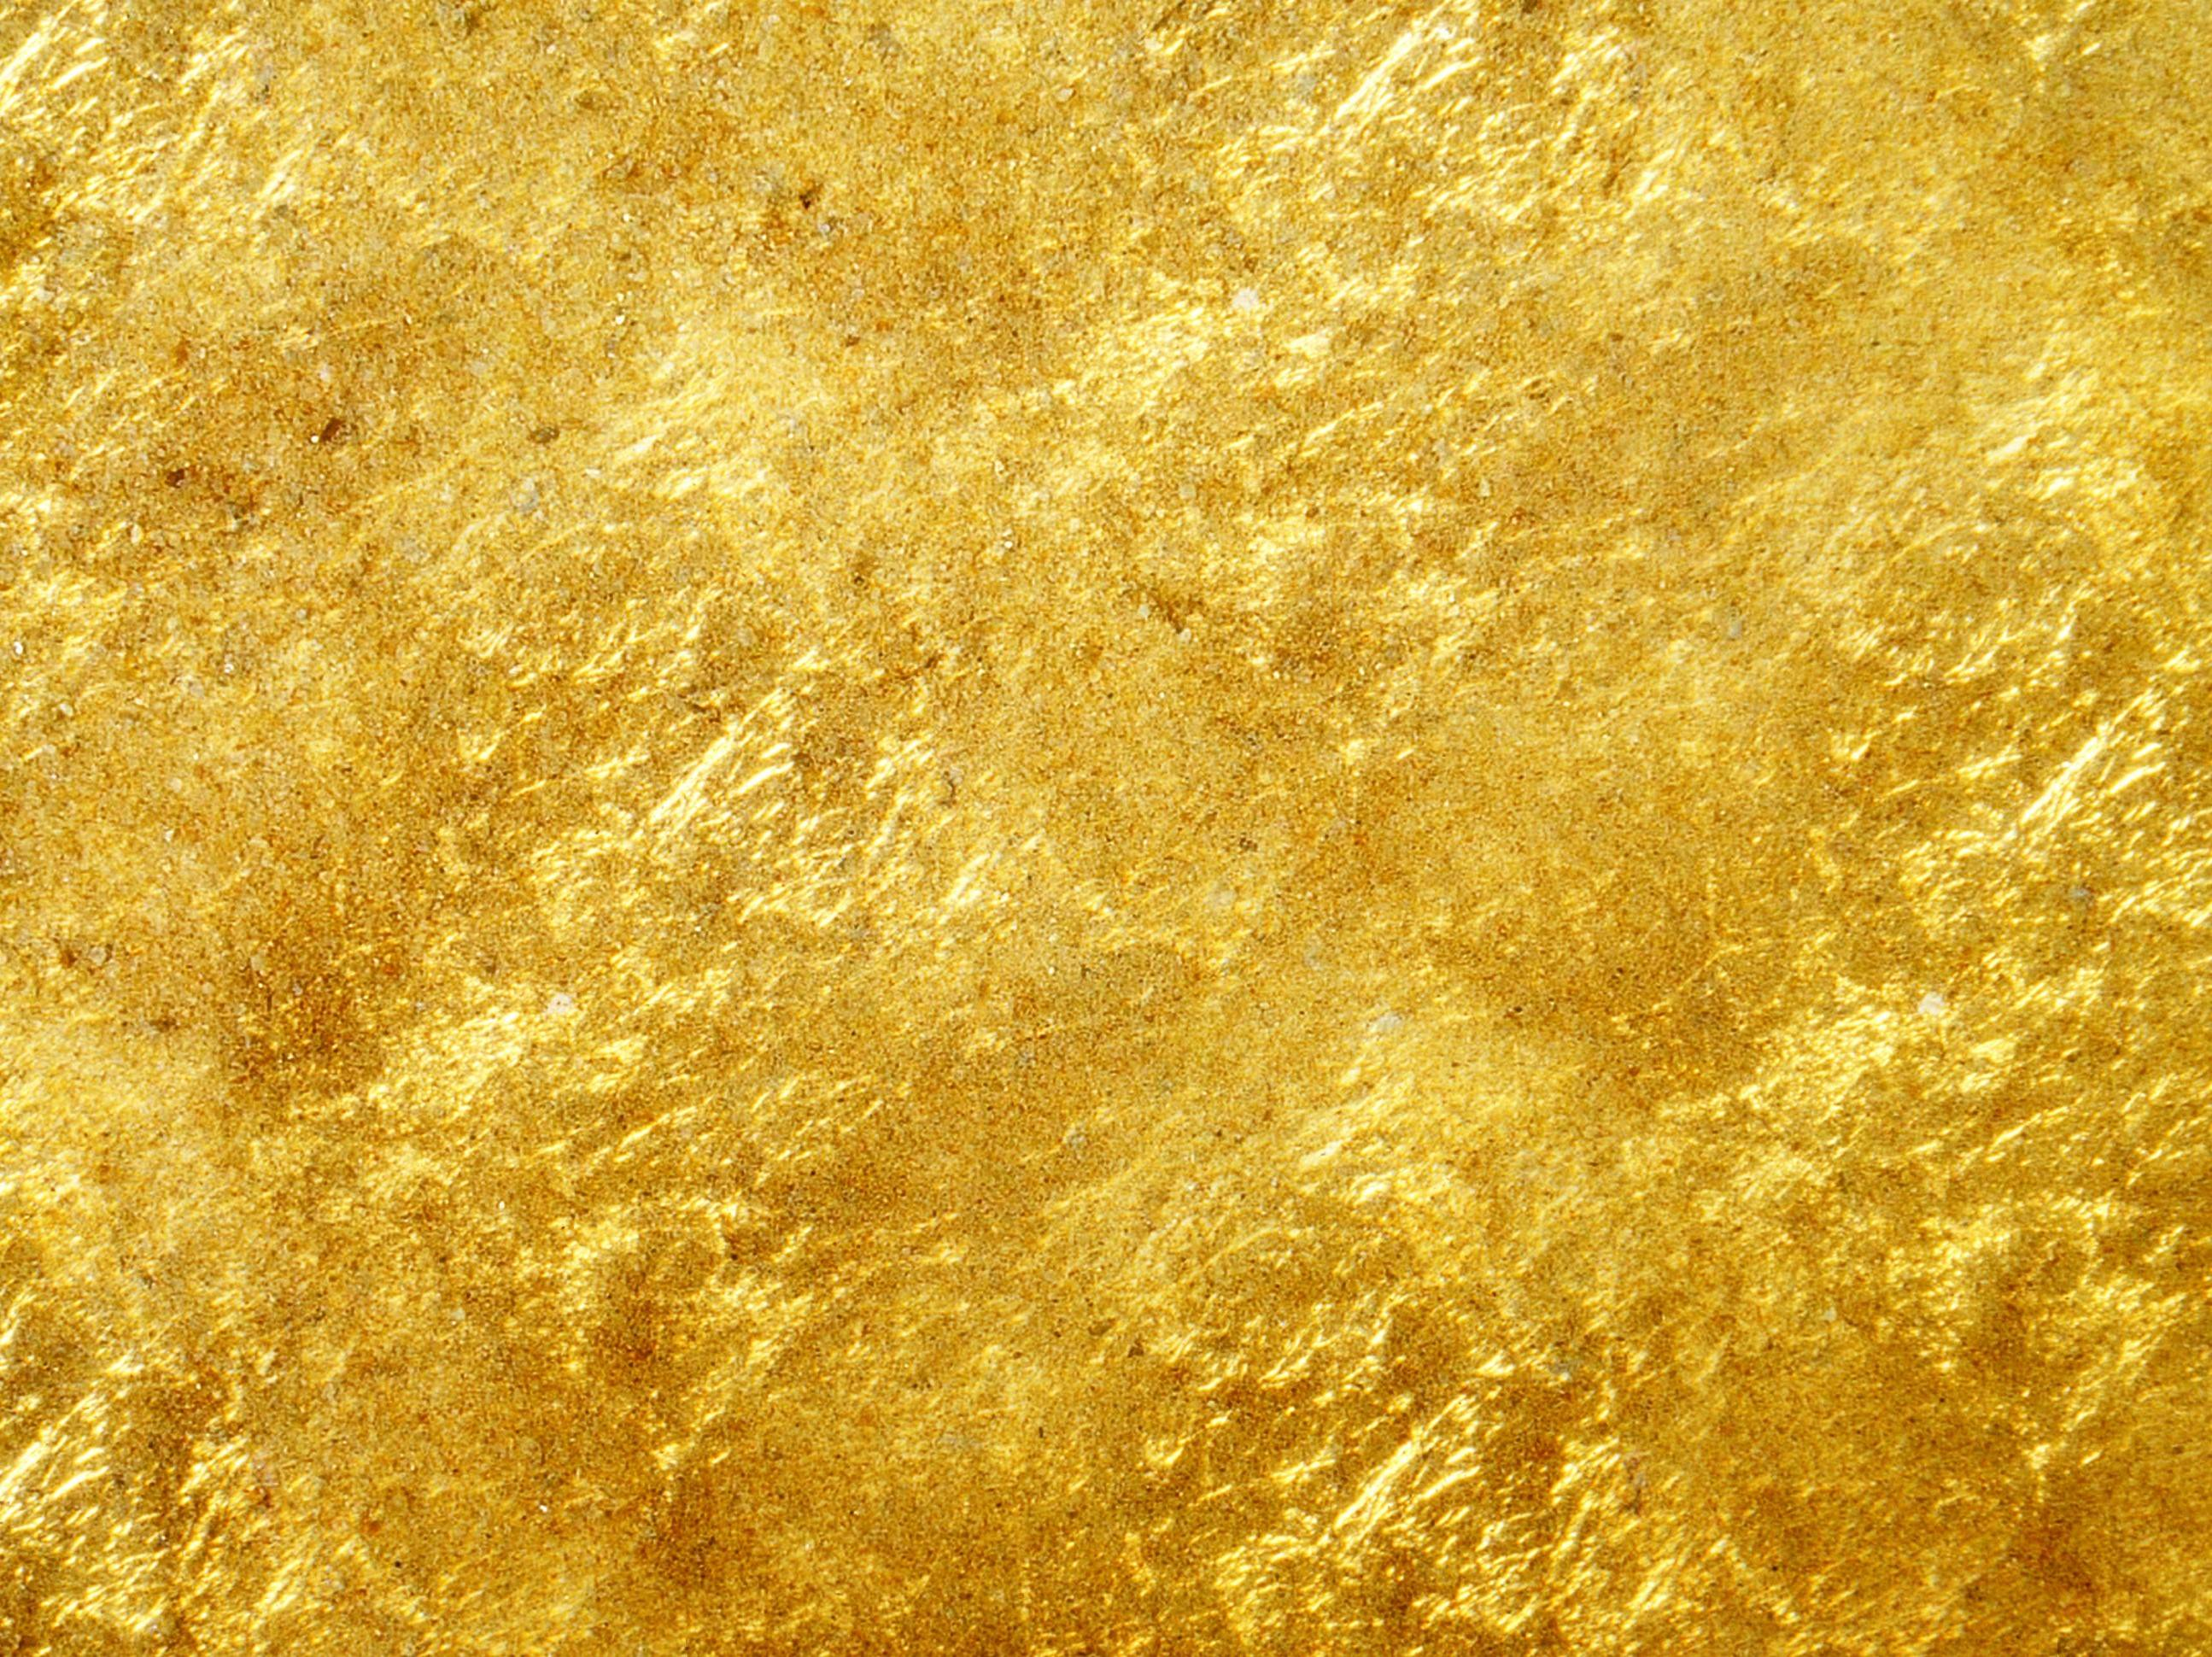 Wallpapers Textures Gold Ink Texture Myspace Backgrounds 19201200 2590x1940